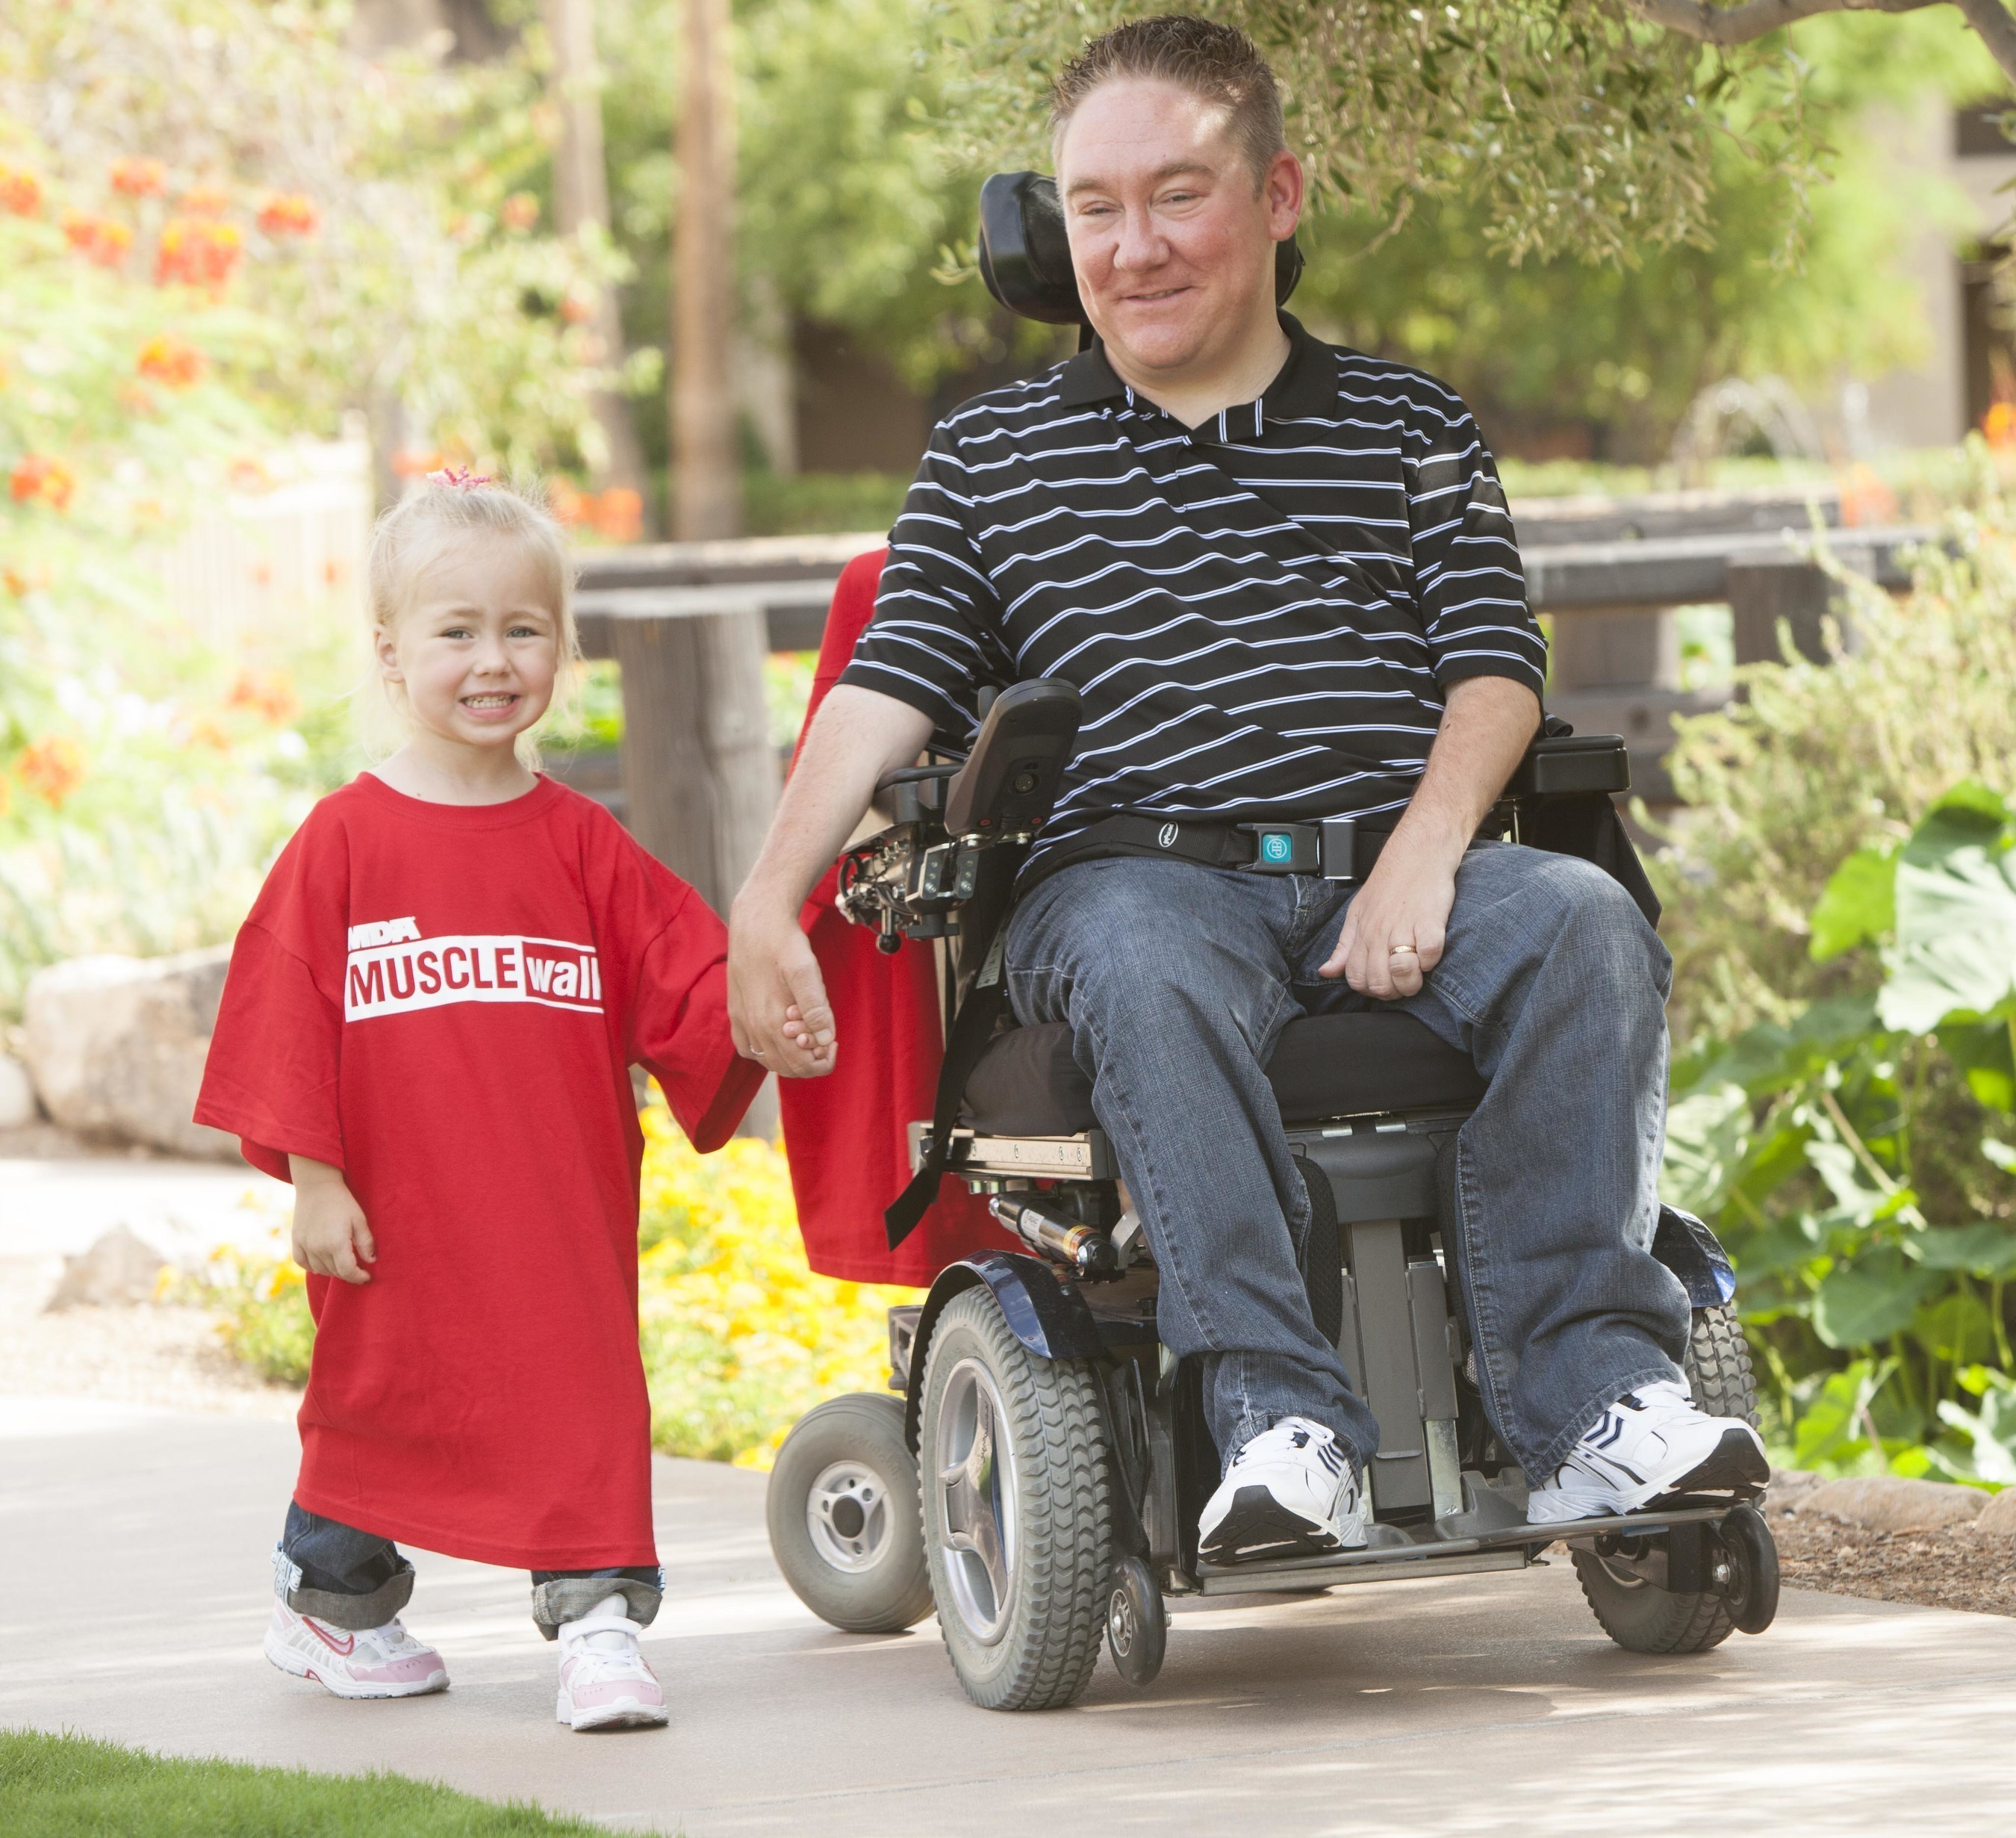 MDA Muscle Walk is the largest, most inspiring event of its kind, bringing communities together - donors, families, partners, sponsors and volunteers - to fight back against muscle disease.